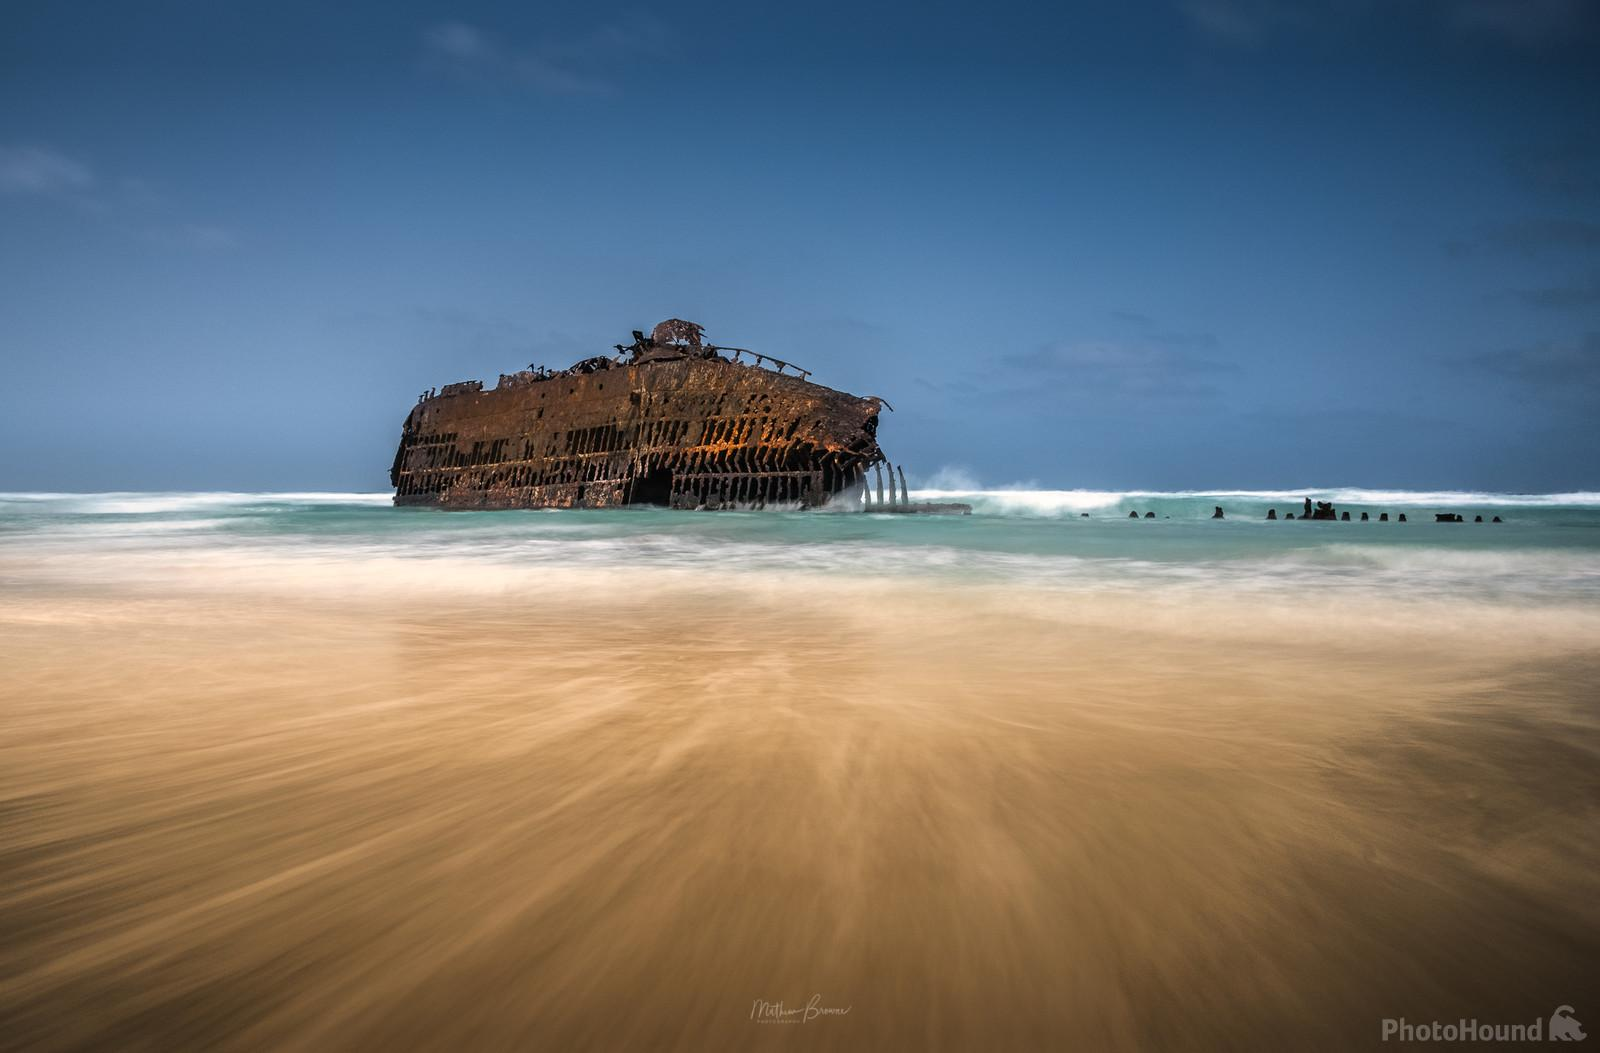 Cape Verde photo locations